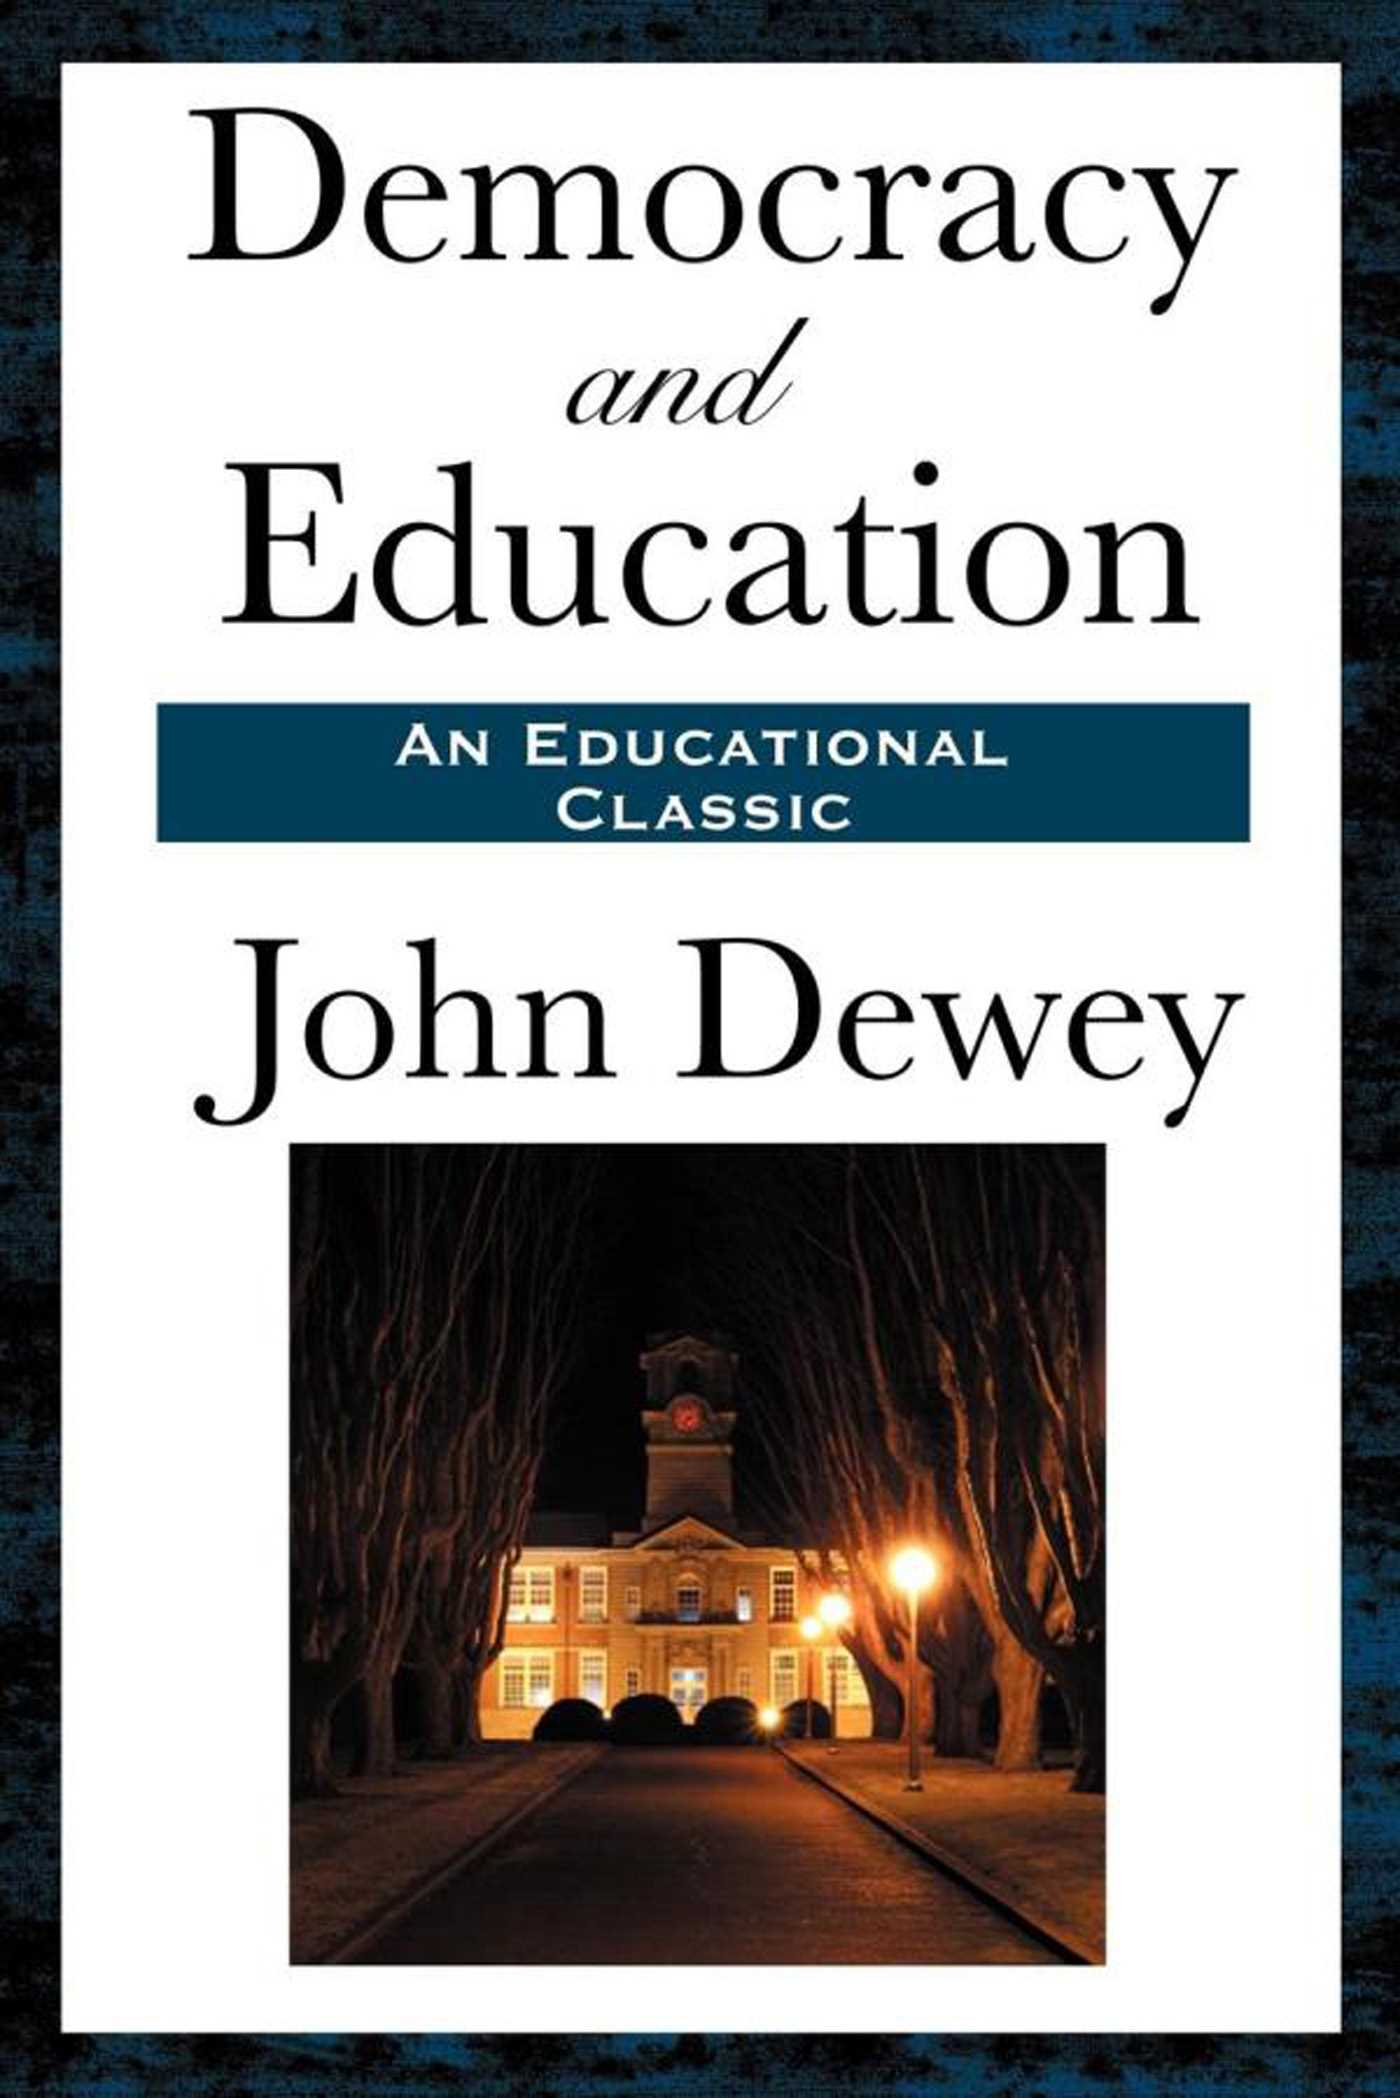 dewey education Essays - largest database of quality sample essays and research papers on john dewey and education.